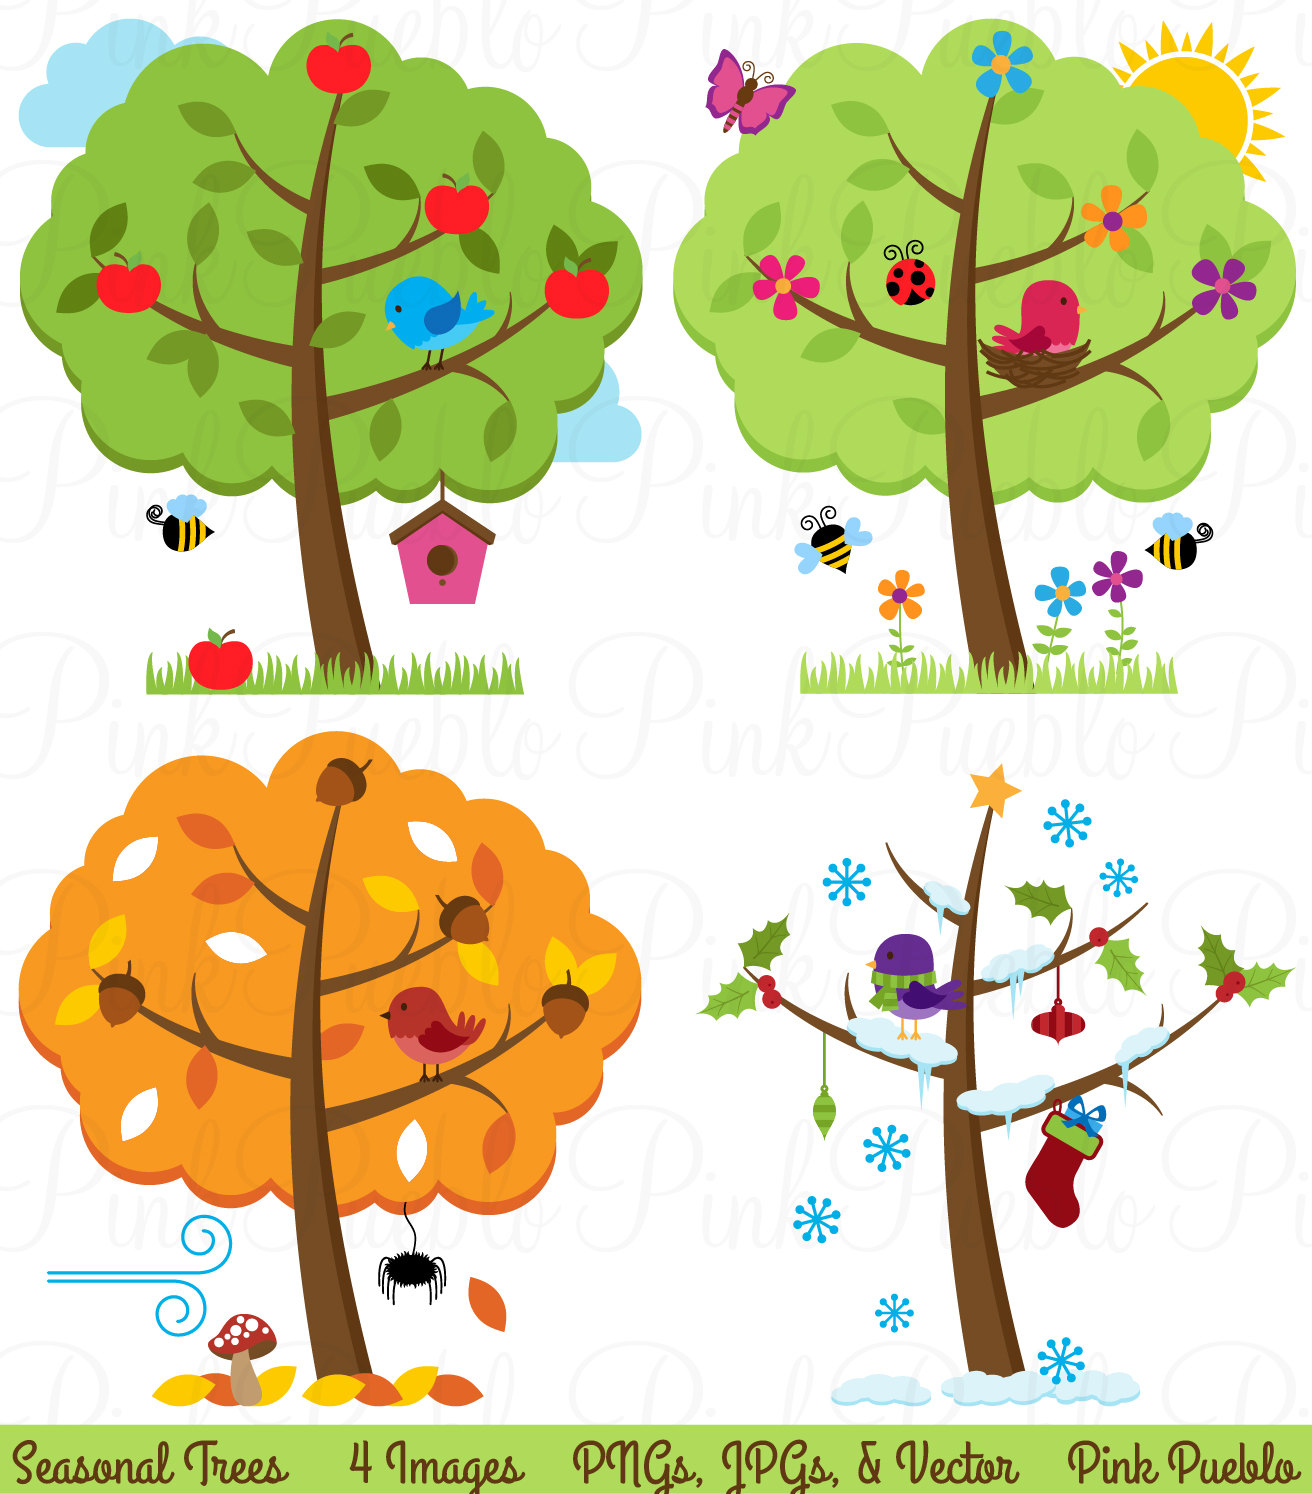 Four Seasons Trees Clipart Clip Art, Sea-Four Seasons Trees Clipart Clip Art, Seasonal Trees and Birds Clipart Clip Art Vectors - Commercial and Personal Use-3